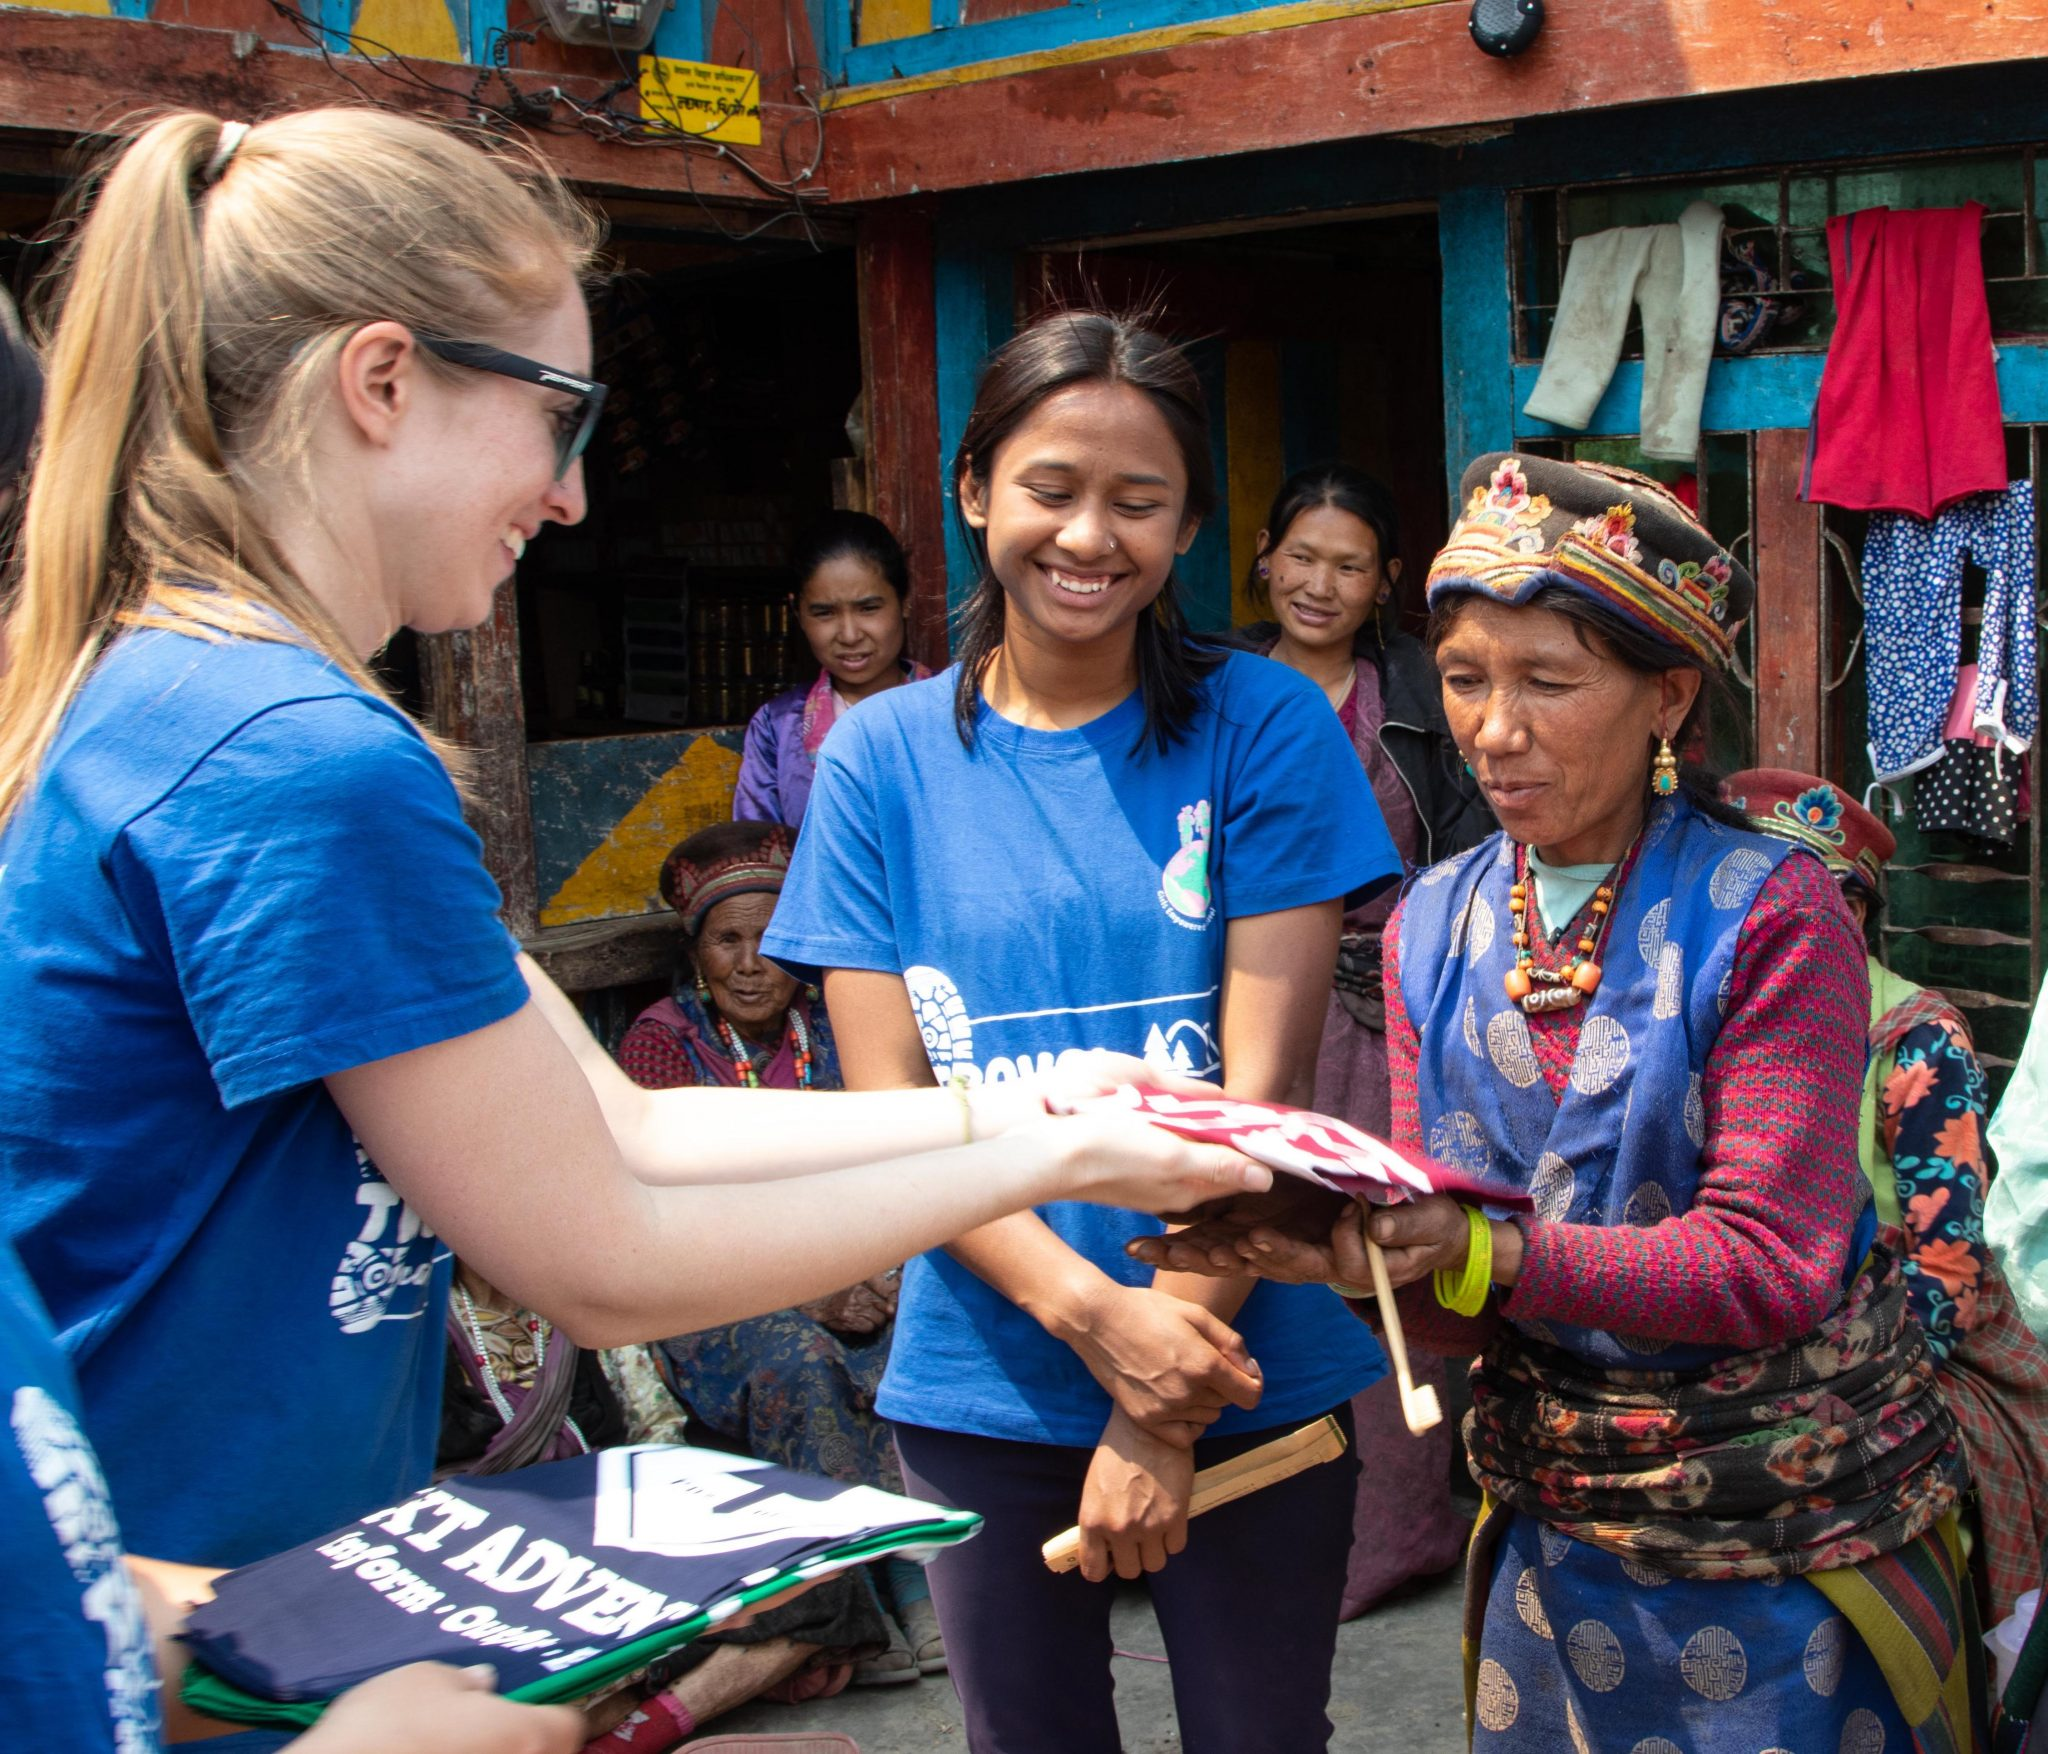 Nepal: Volunteer in Ethnic Village + Hike, May 5-17,2020 OR REQUEST YOUR OWN DATES